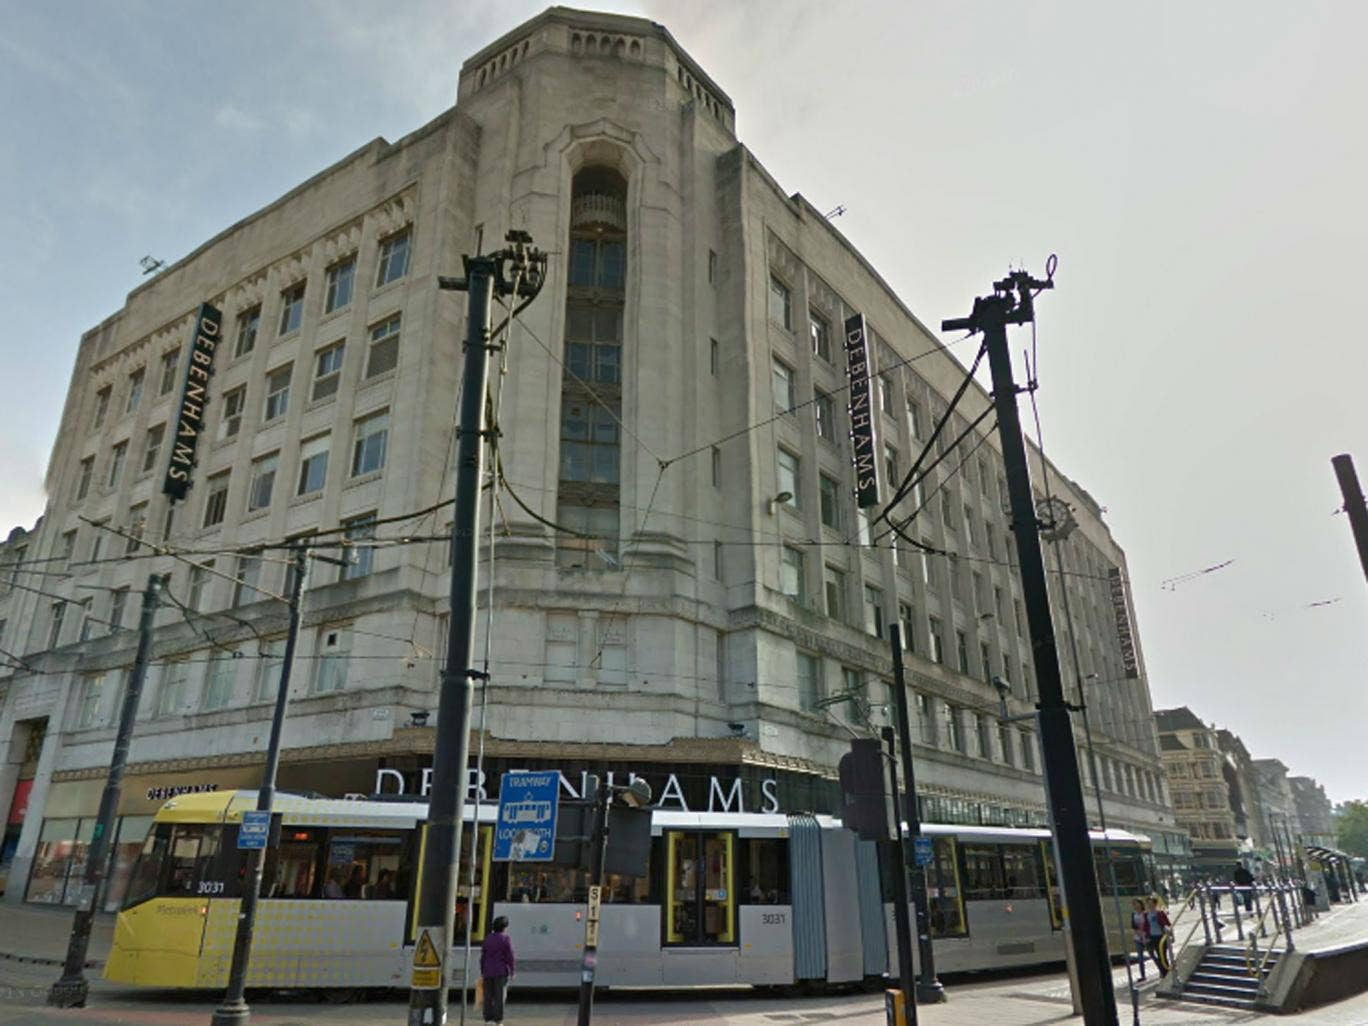 Two men have been found guilty of raping a 14-year-old boy in this Debenhams store in Manchester